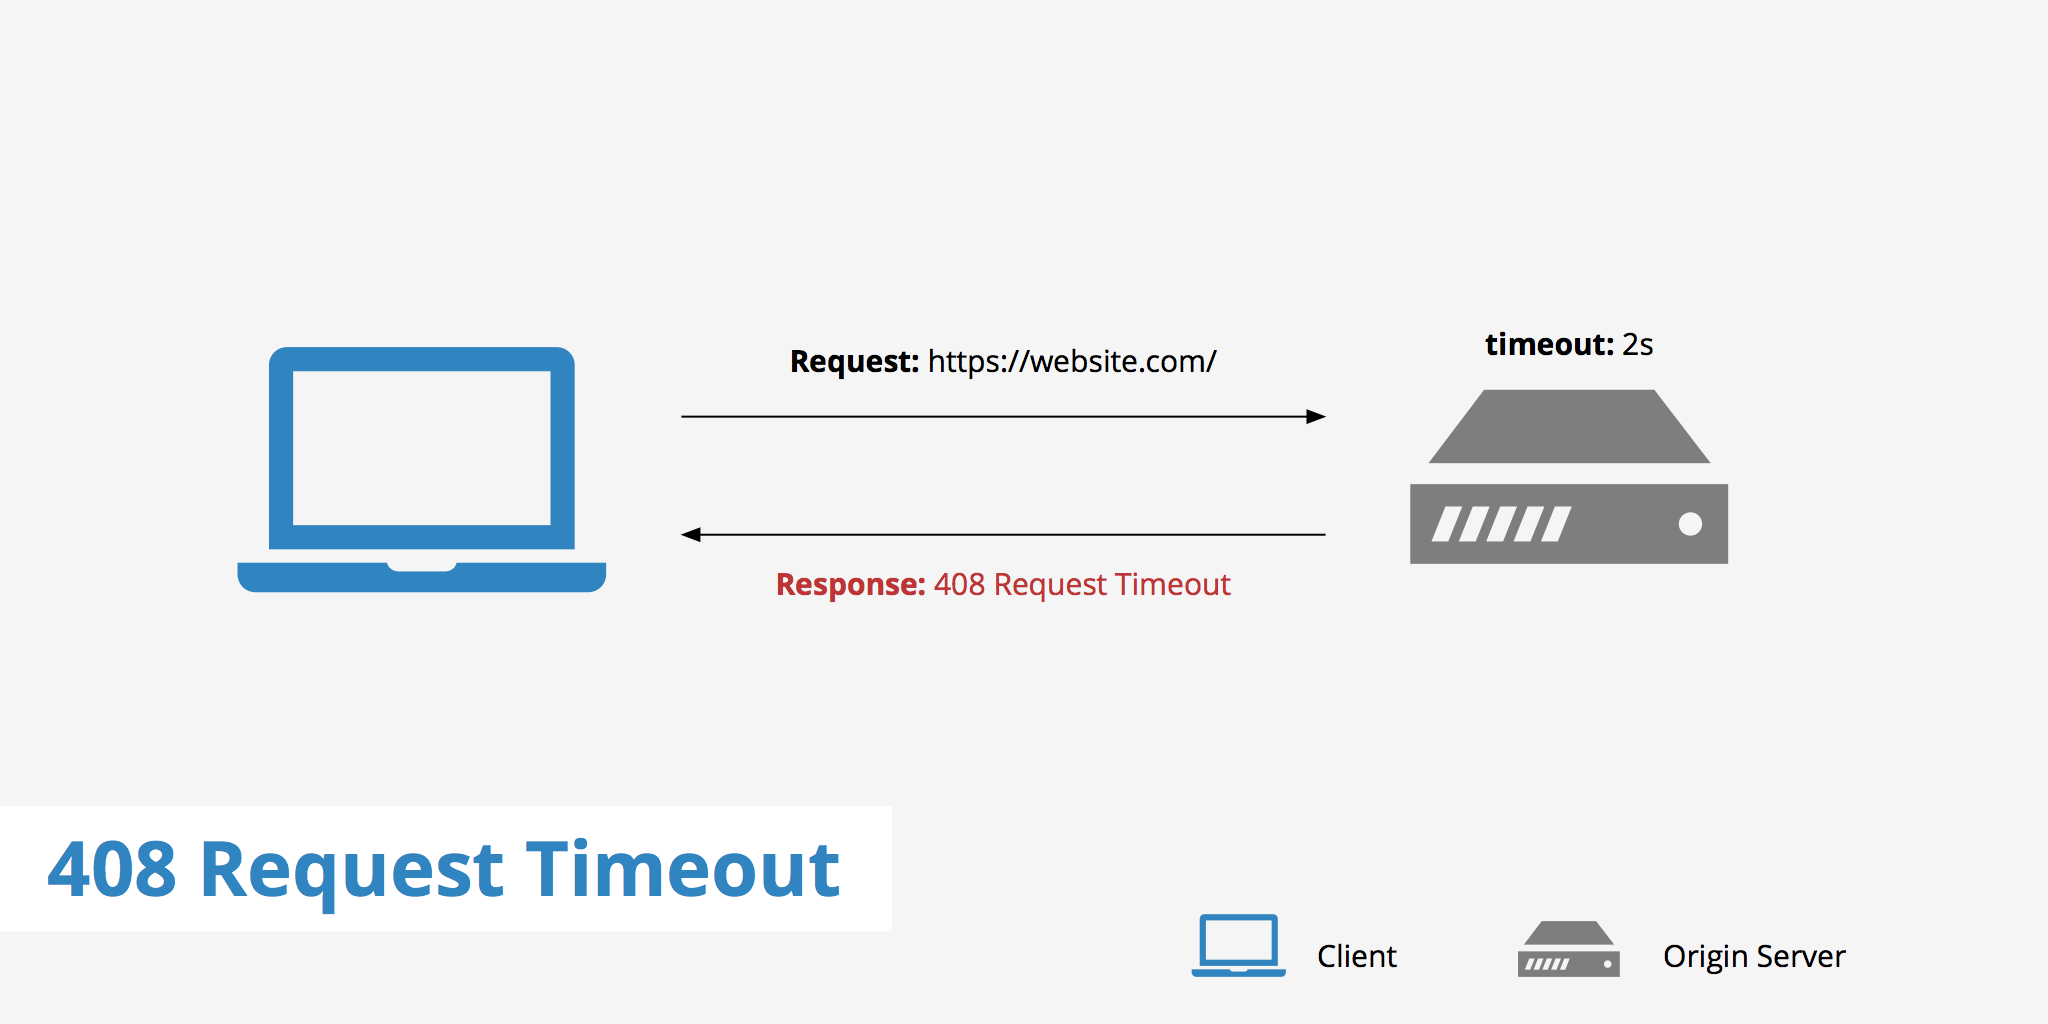 How to Fix a 408 Request Timeout Error - KeyCDN Support